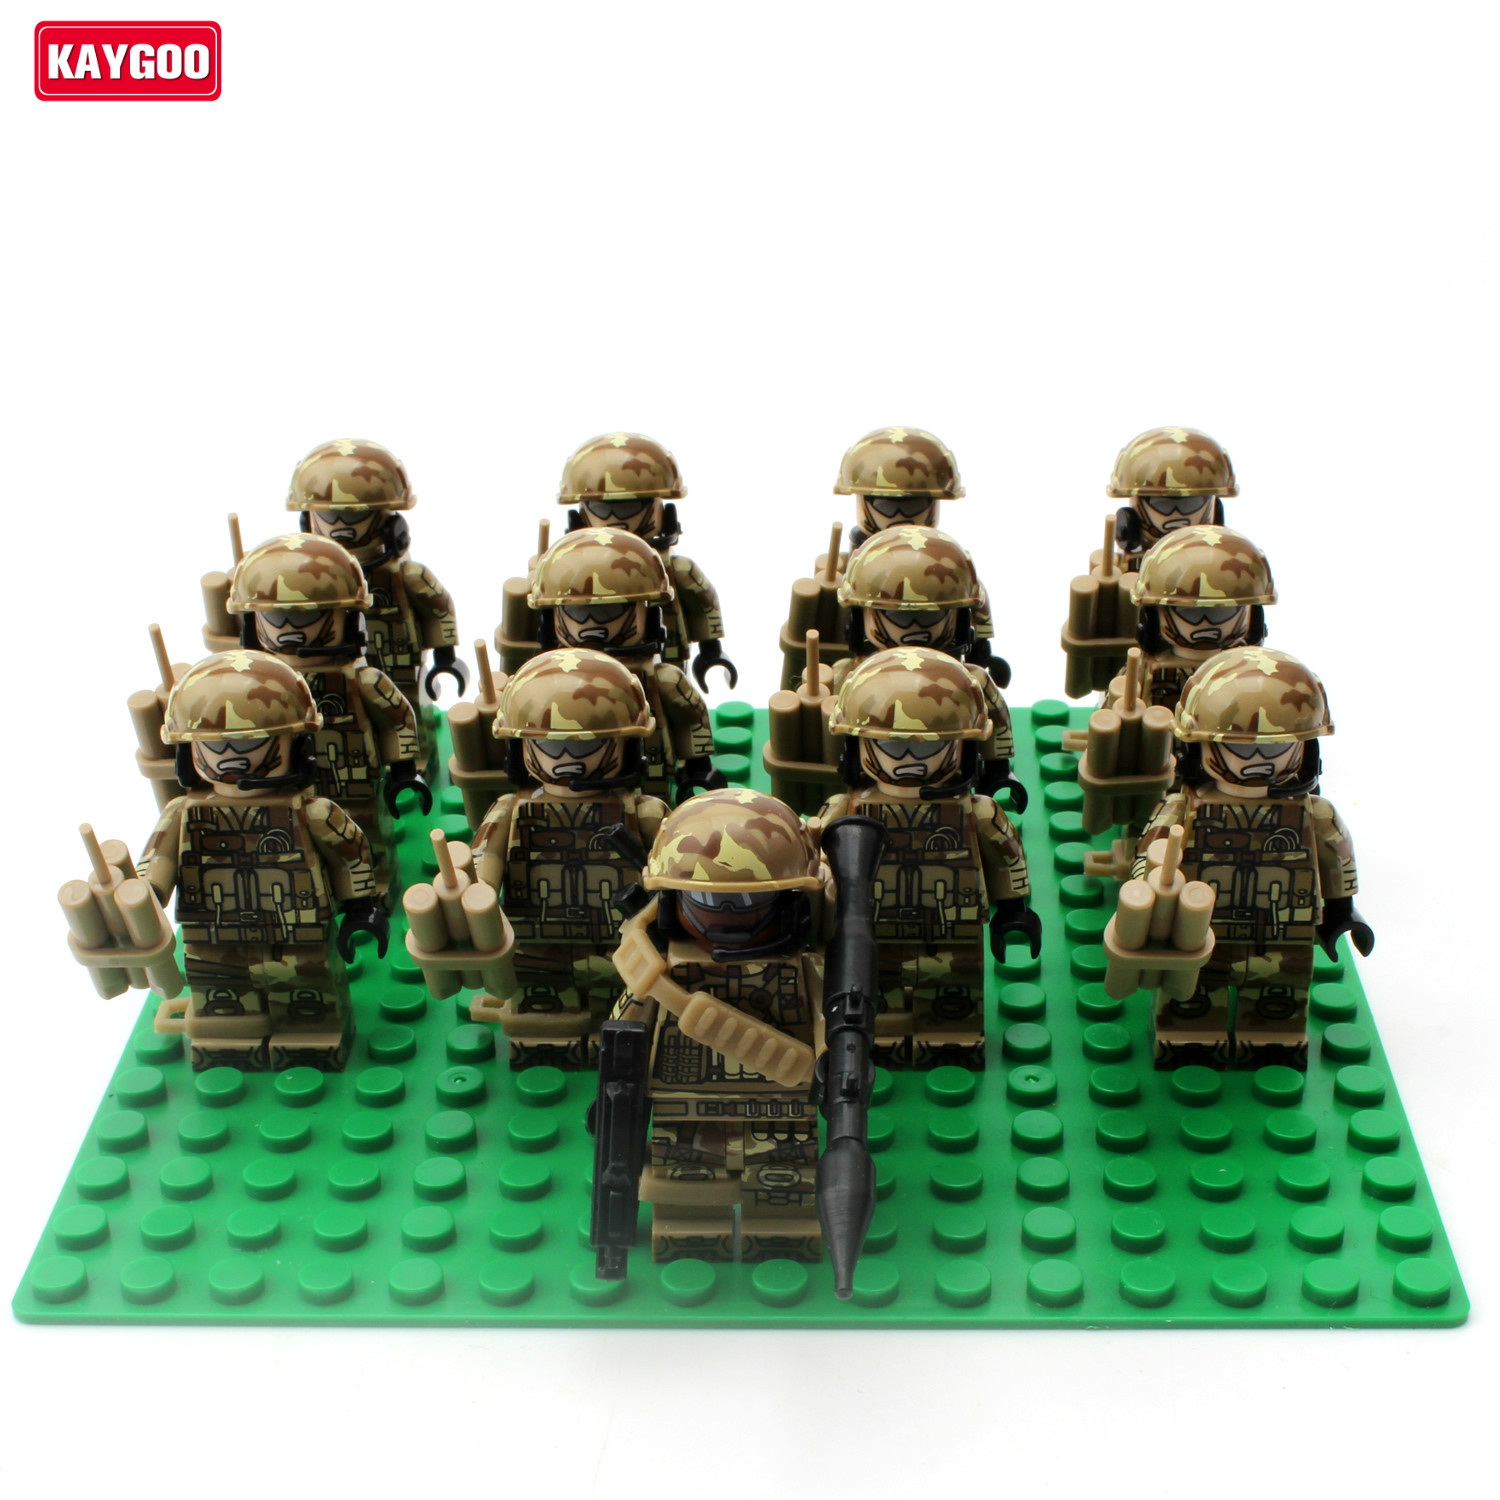 Kaygoo many Alloy Weapons SWAT military army sol rs building set